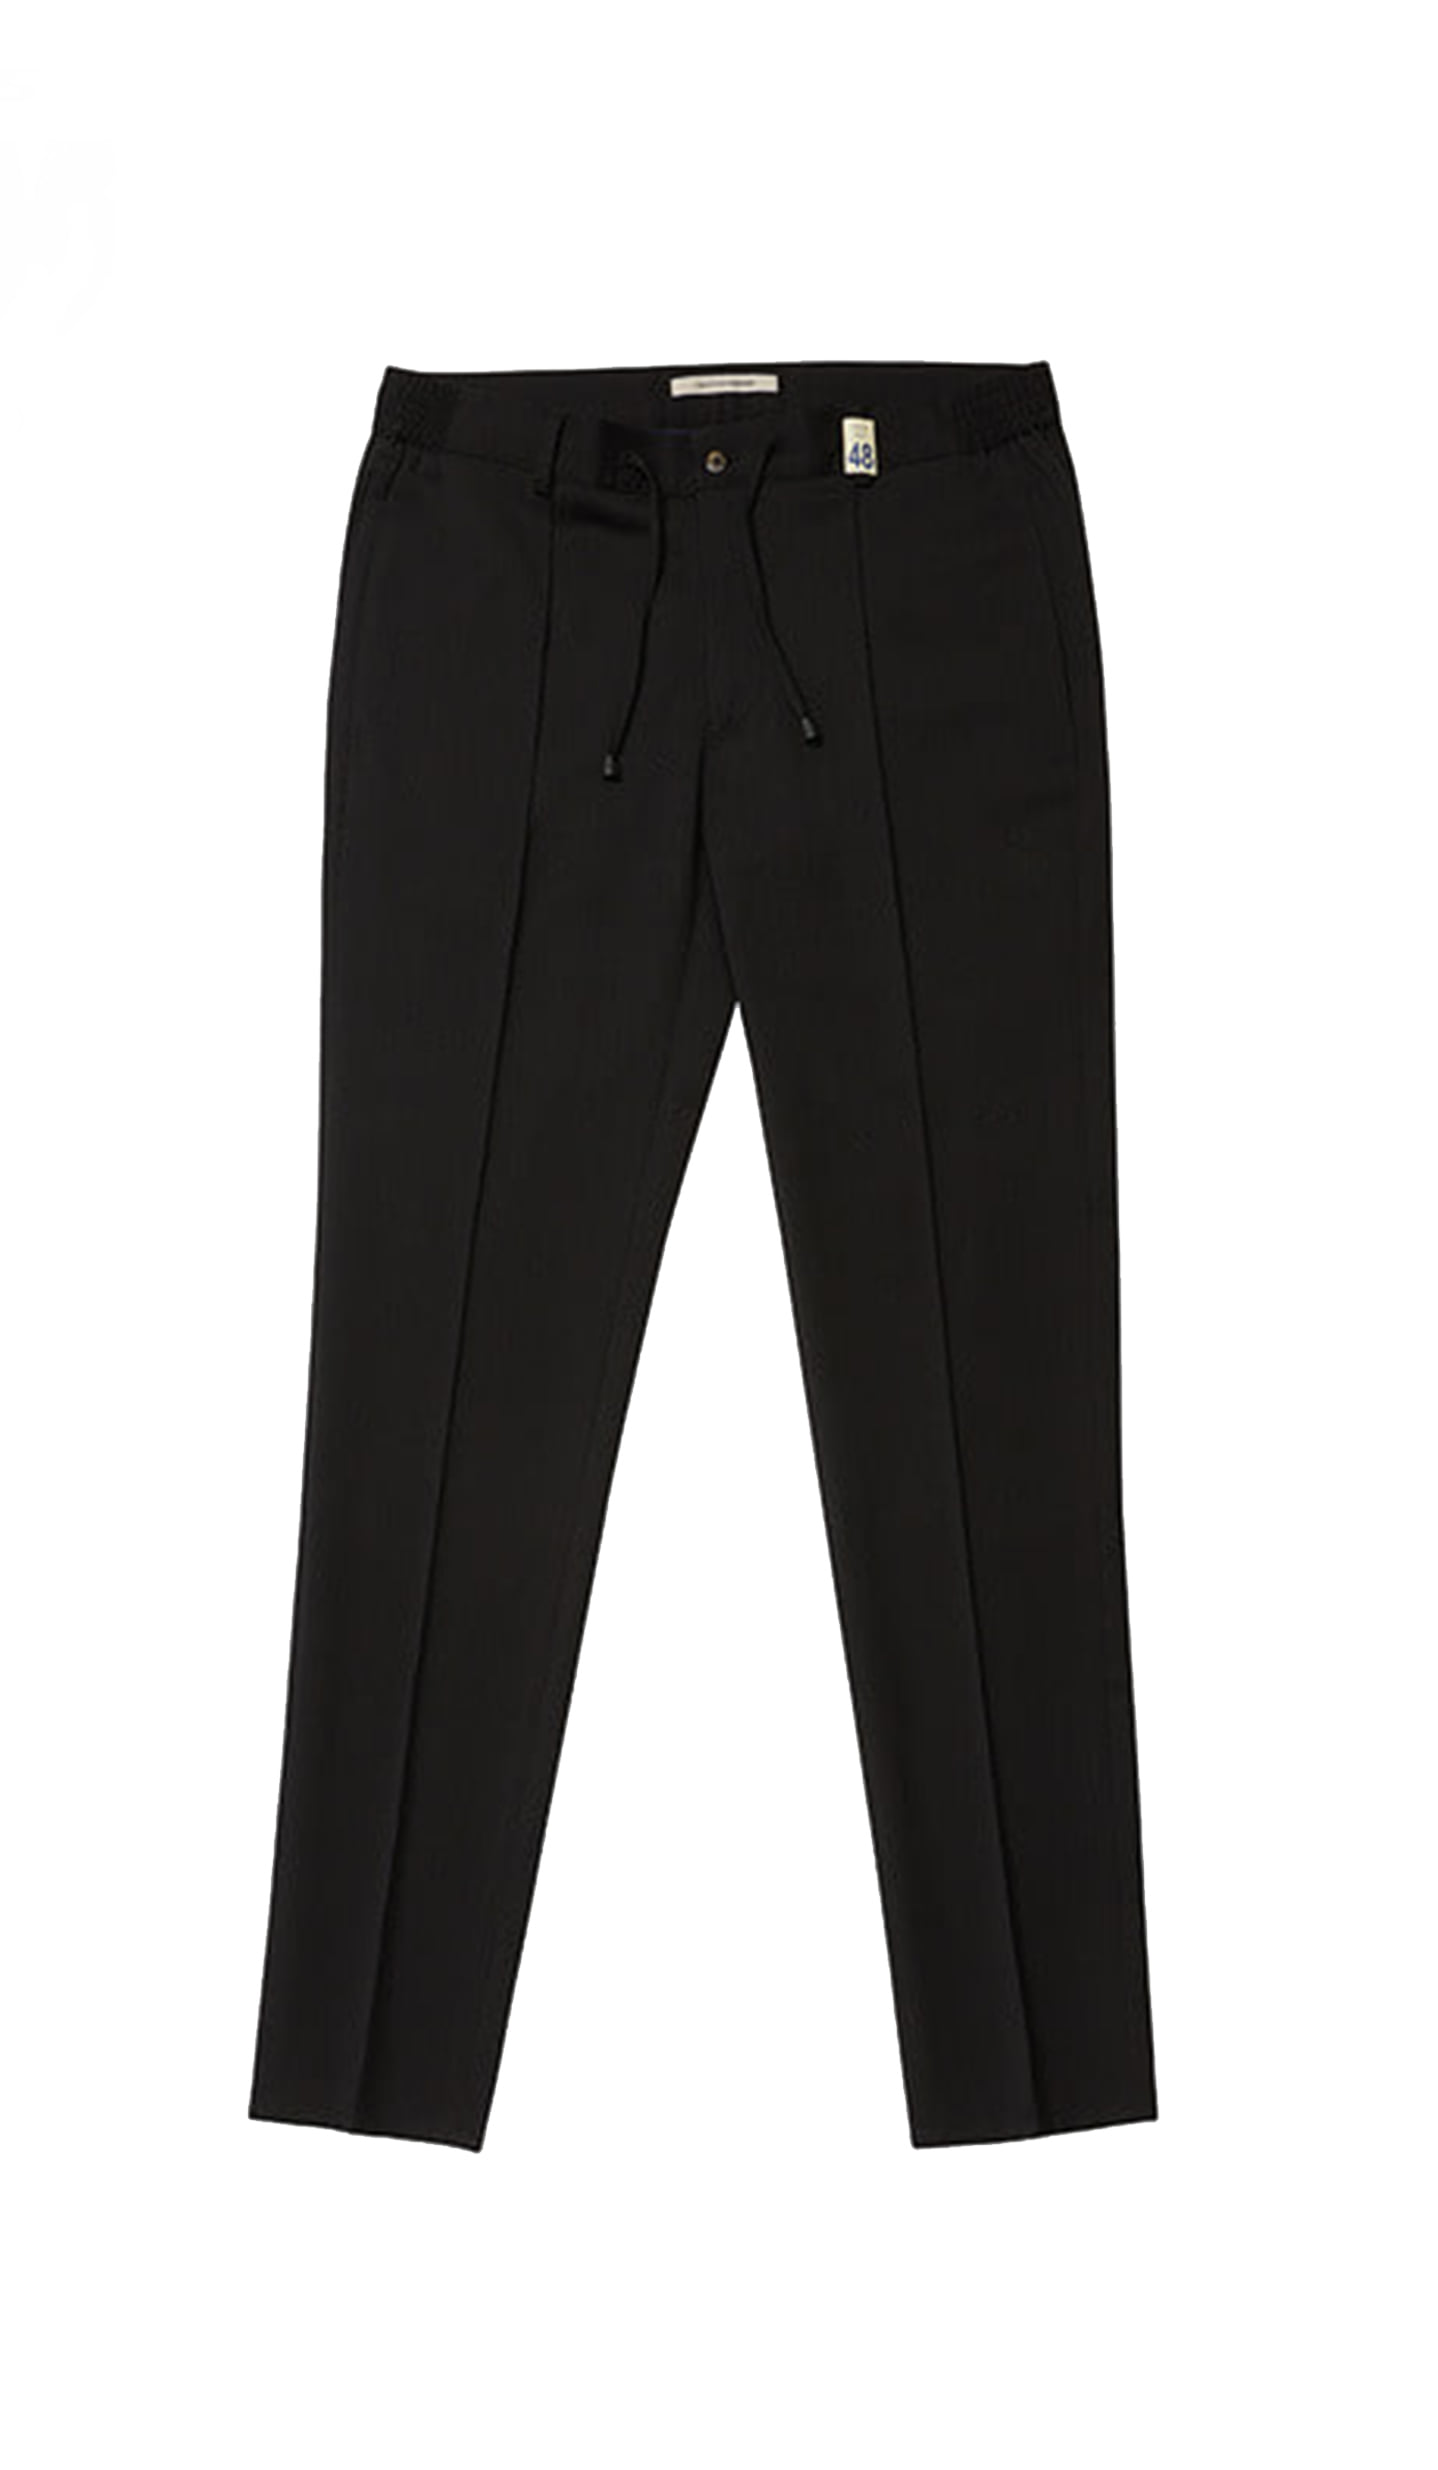 TAILORABLE X Giab's ARCHIVIO TROUSERS BL